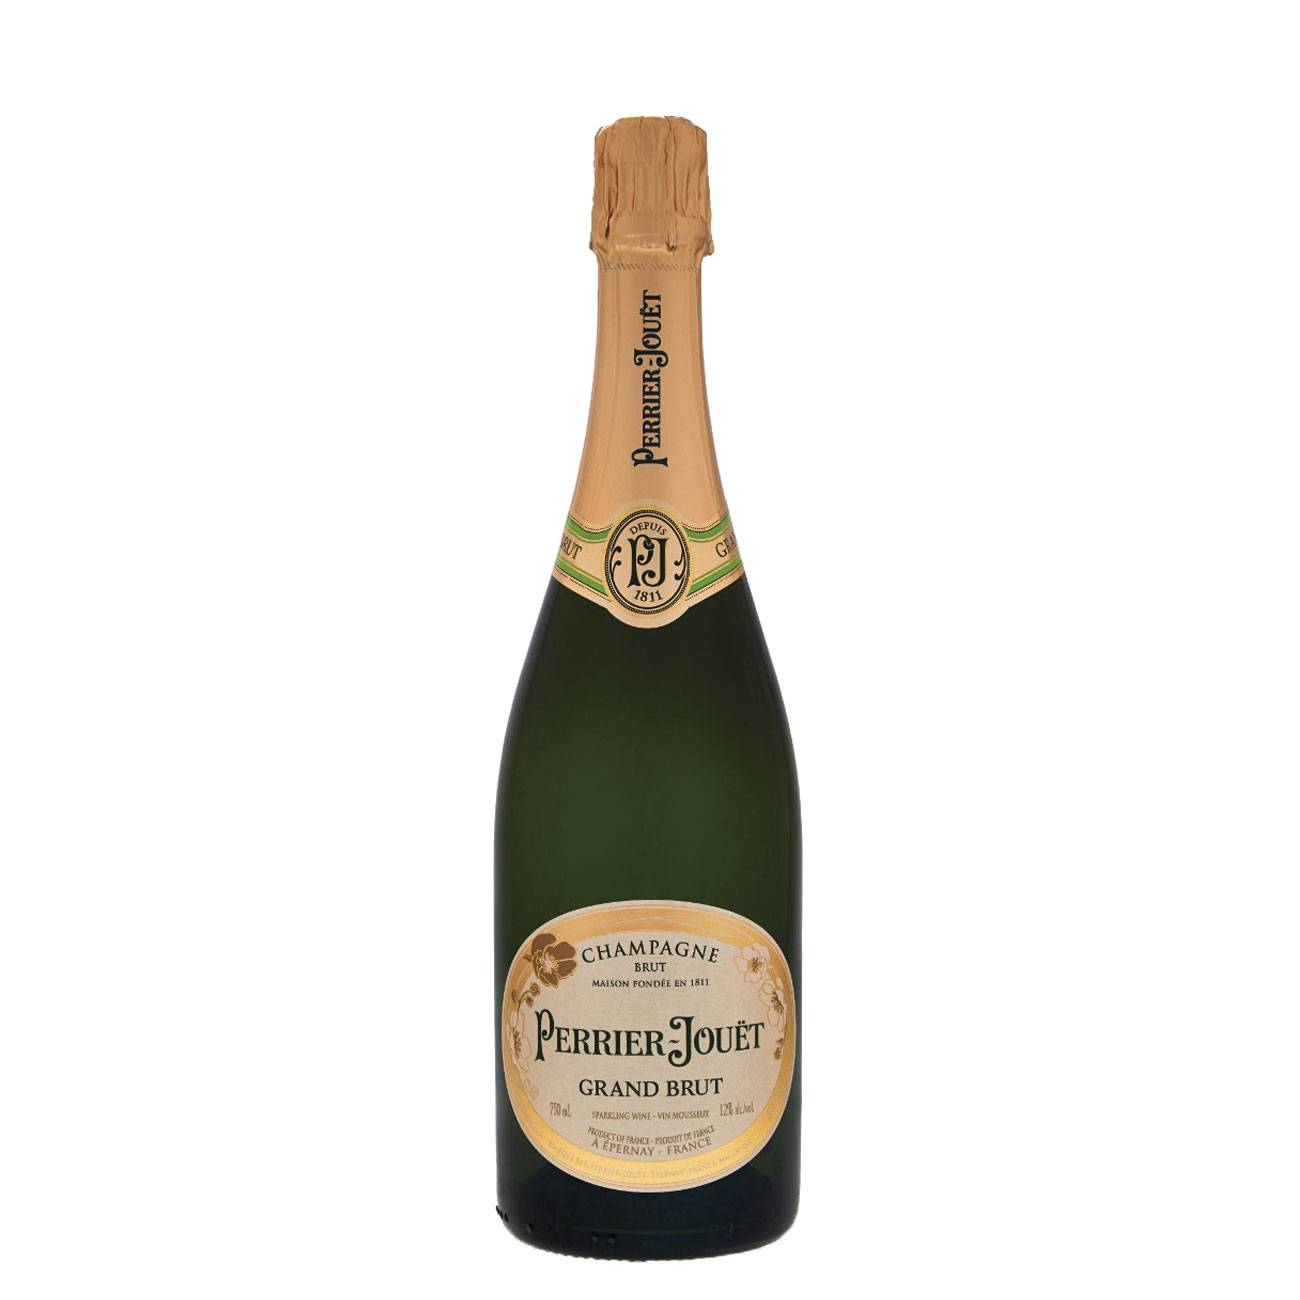 Sampanie, JOUET GRAND BRUT 750 ML, Laurent Perrier